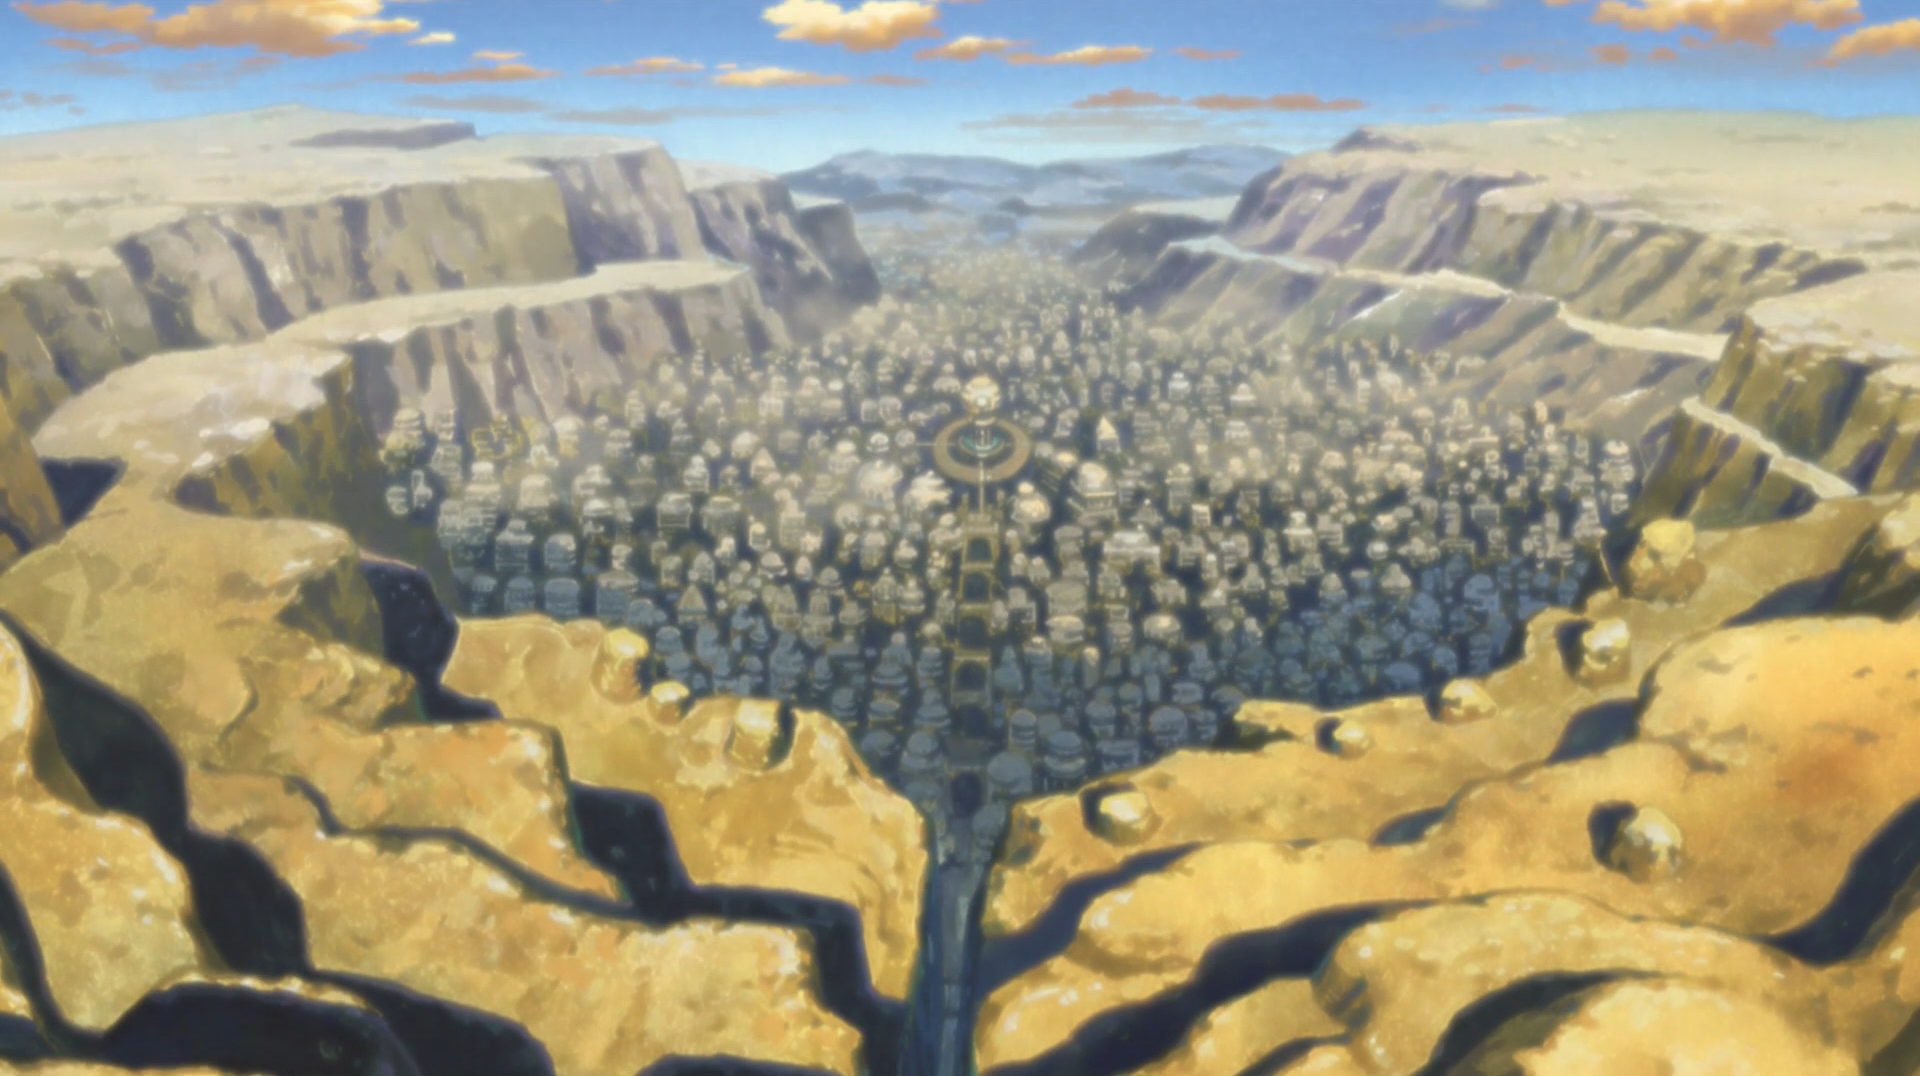 Land of wind narutopedia fandom powered by wikia land of wind biocorpaavc Image collections